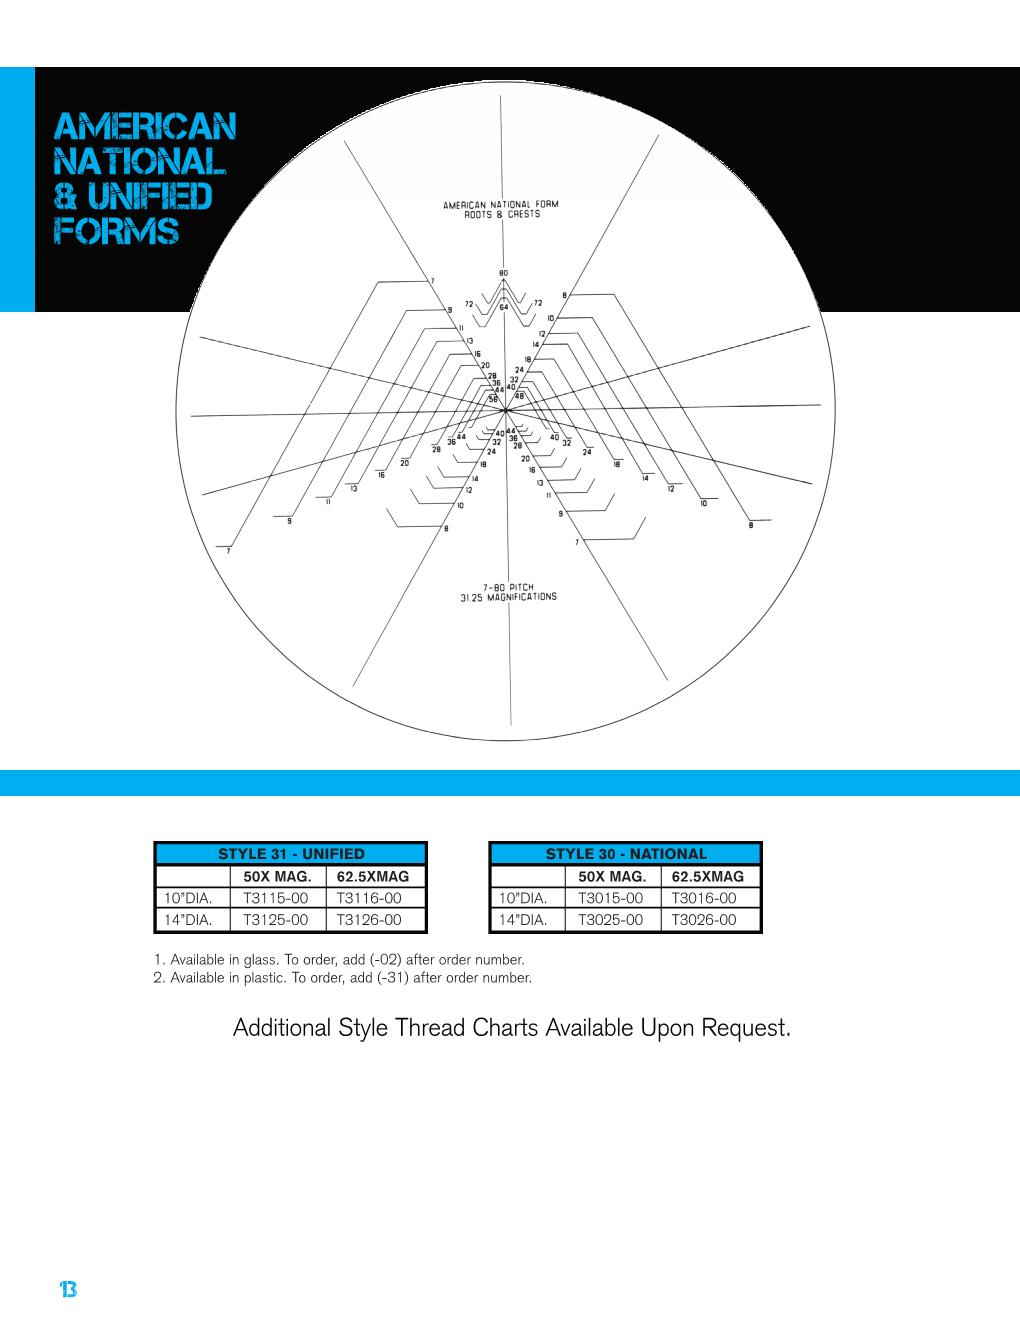 Unlimited Services Chart & Fixture Catalog 12.2018 FINAL Page 014.jpg